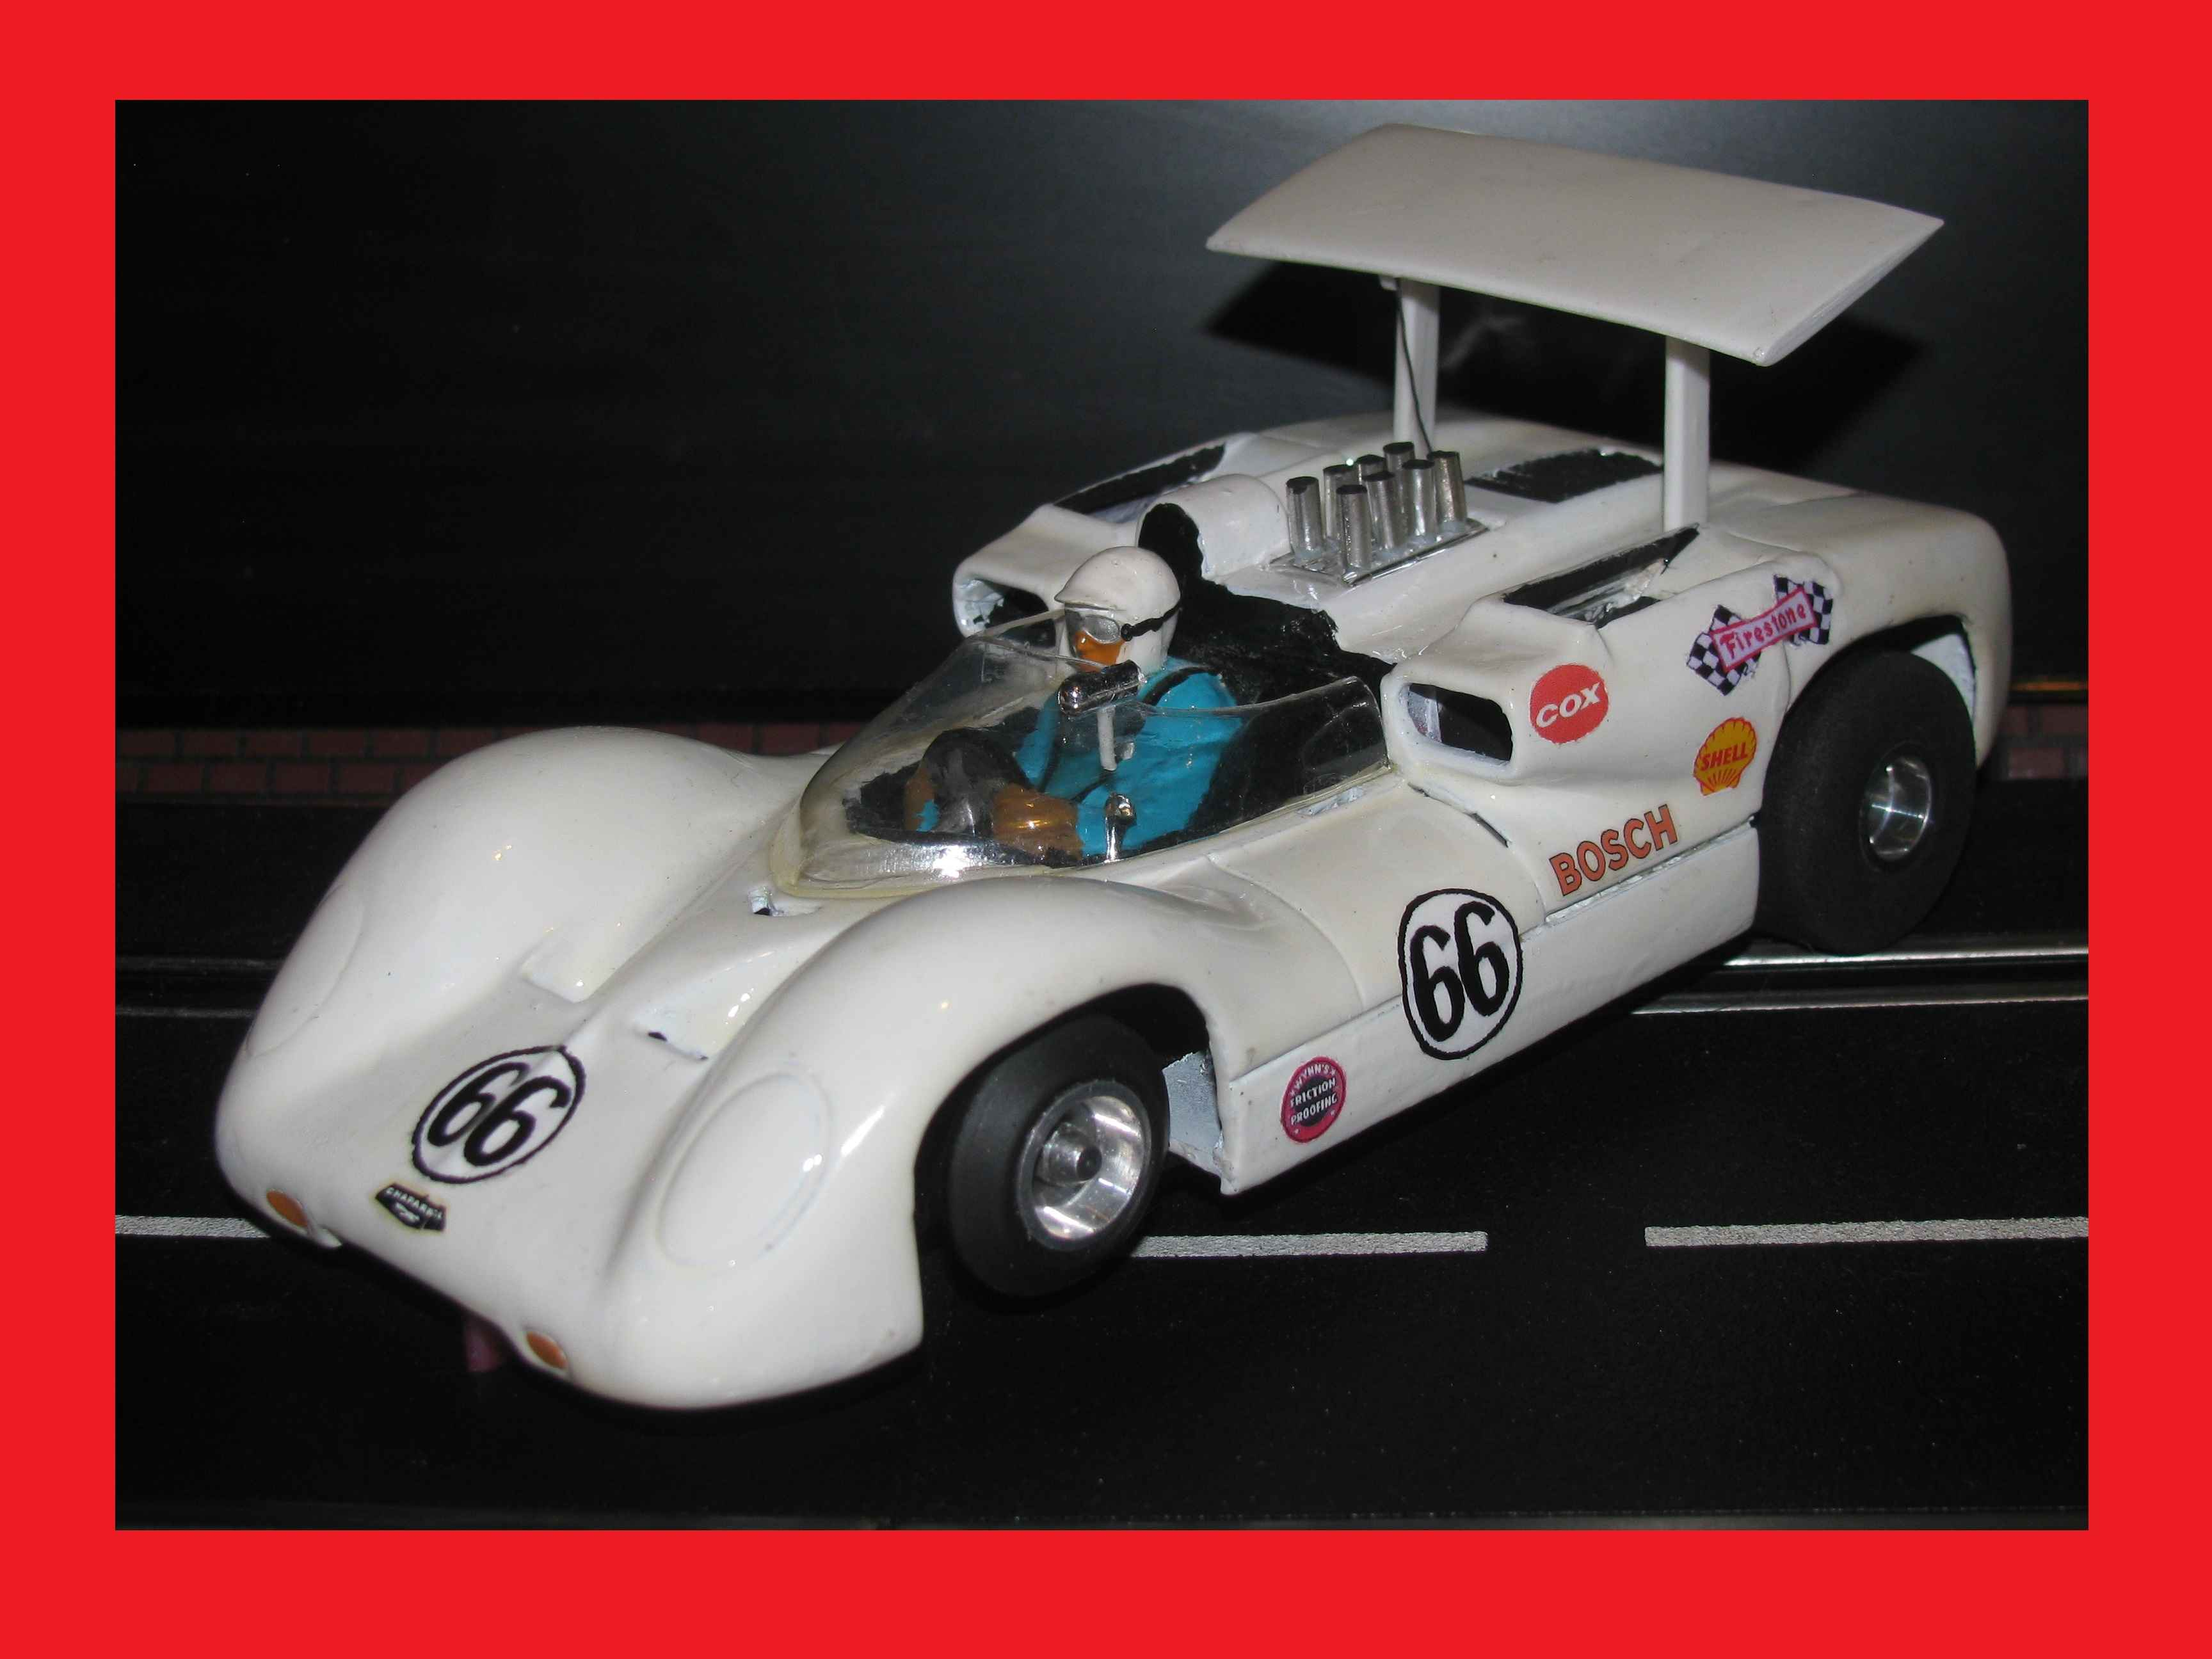 * SOLD to Chris C.* On HOLD FOR CHRIS C. at discounted price * * Winter Super Sale * COX Chaparral 2E Jim Hall #66 1:24 Scale Slot Car With Vintage and RARE IMC Chassis